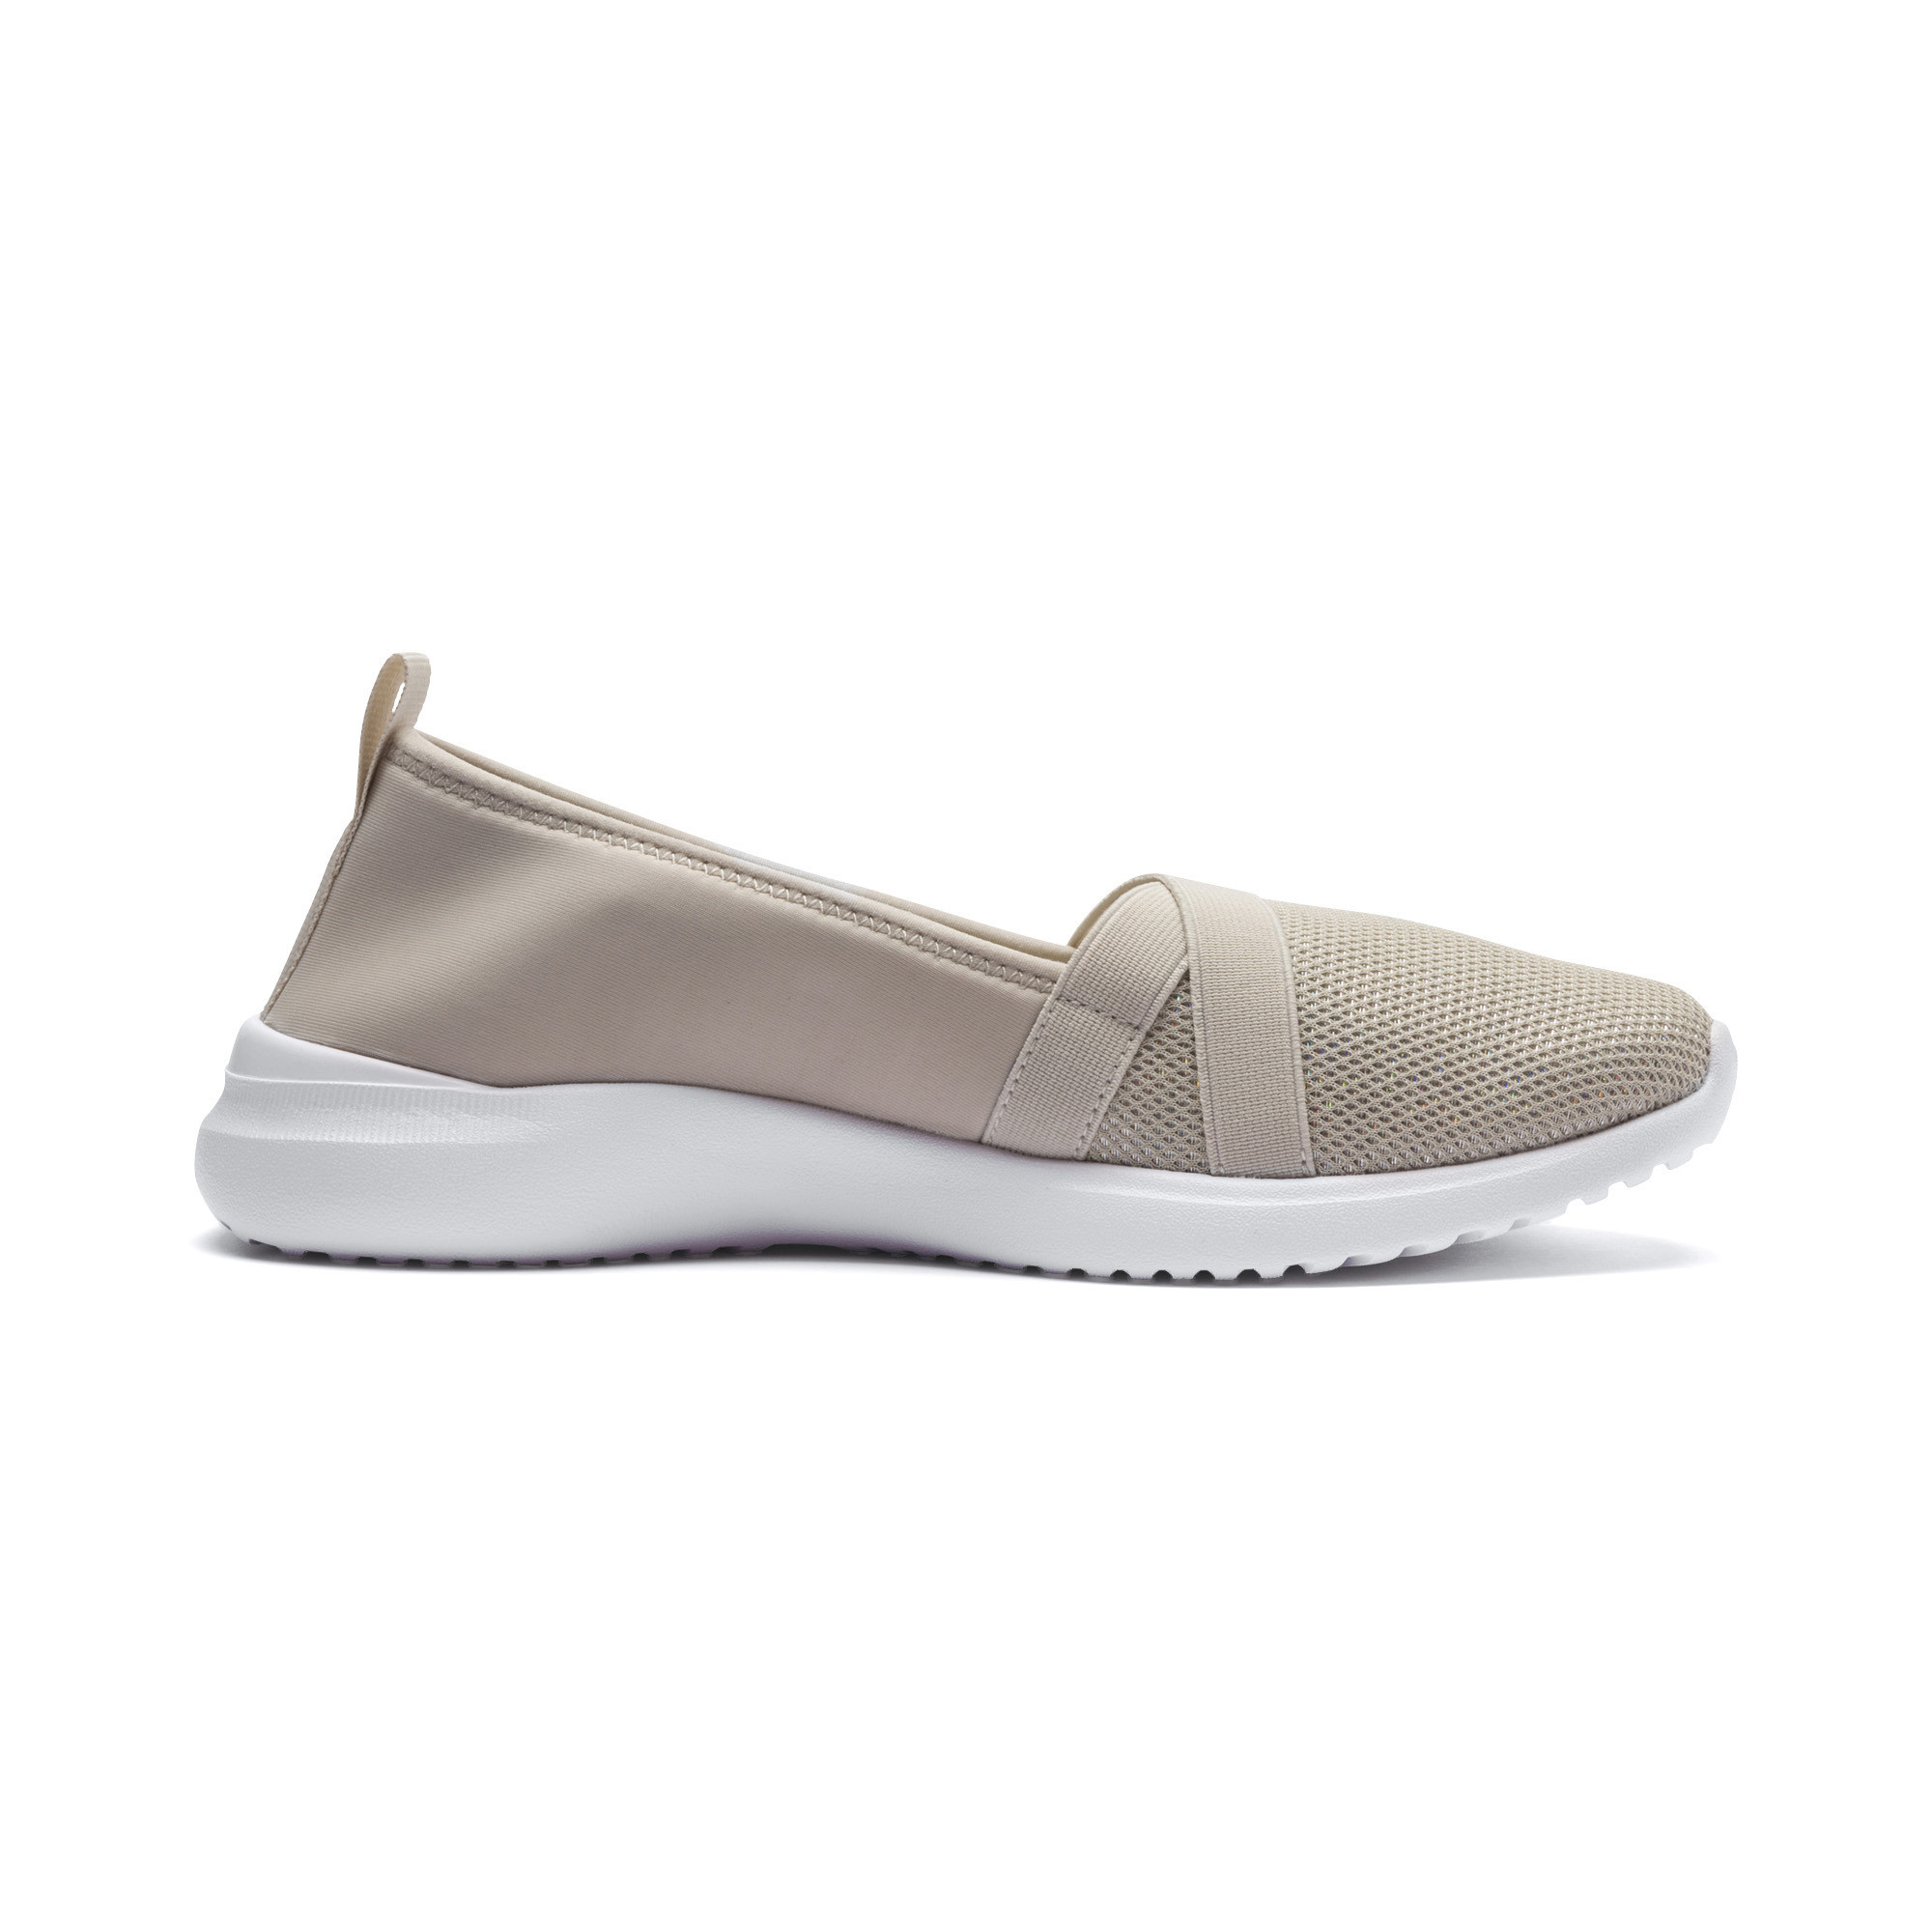 PUMA-Adelina-Sparkle-Women-s-Ballet-Shoes-Women-Shoe-Basics thumbnail 6